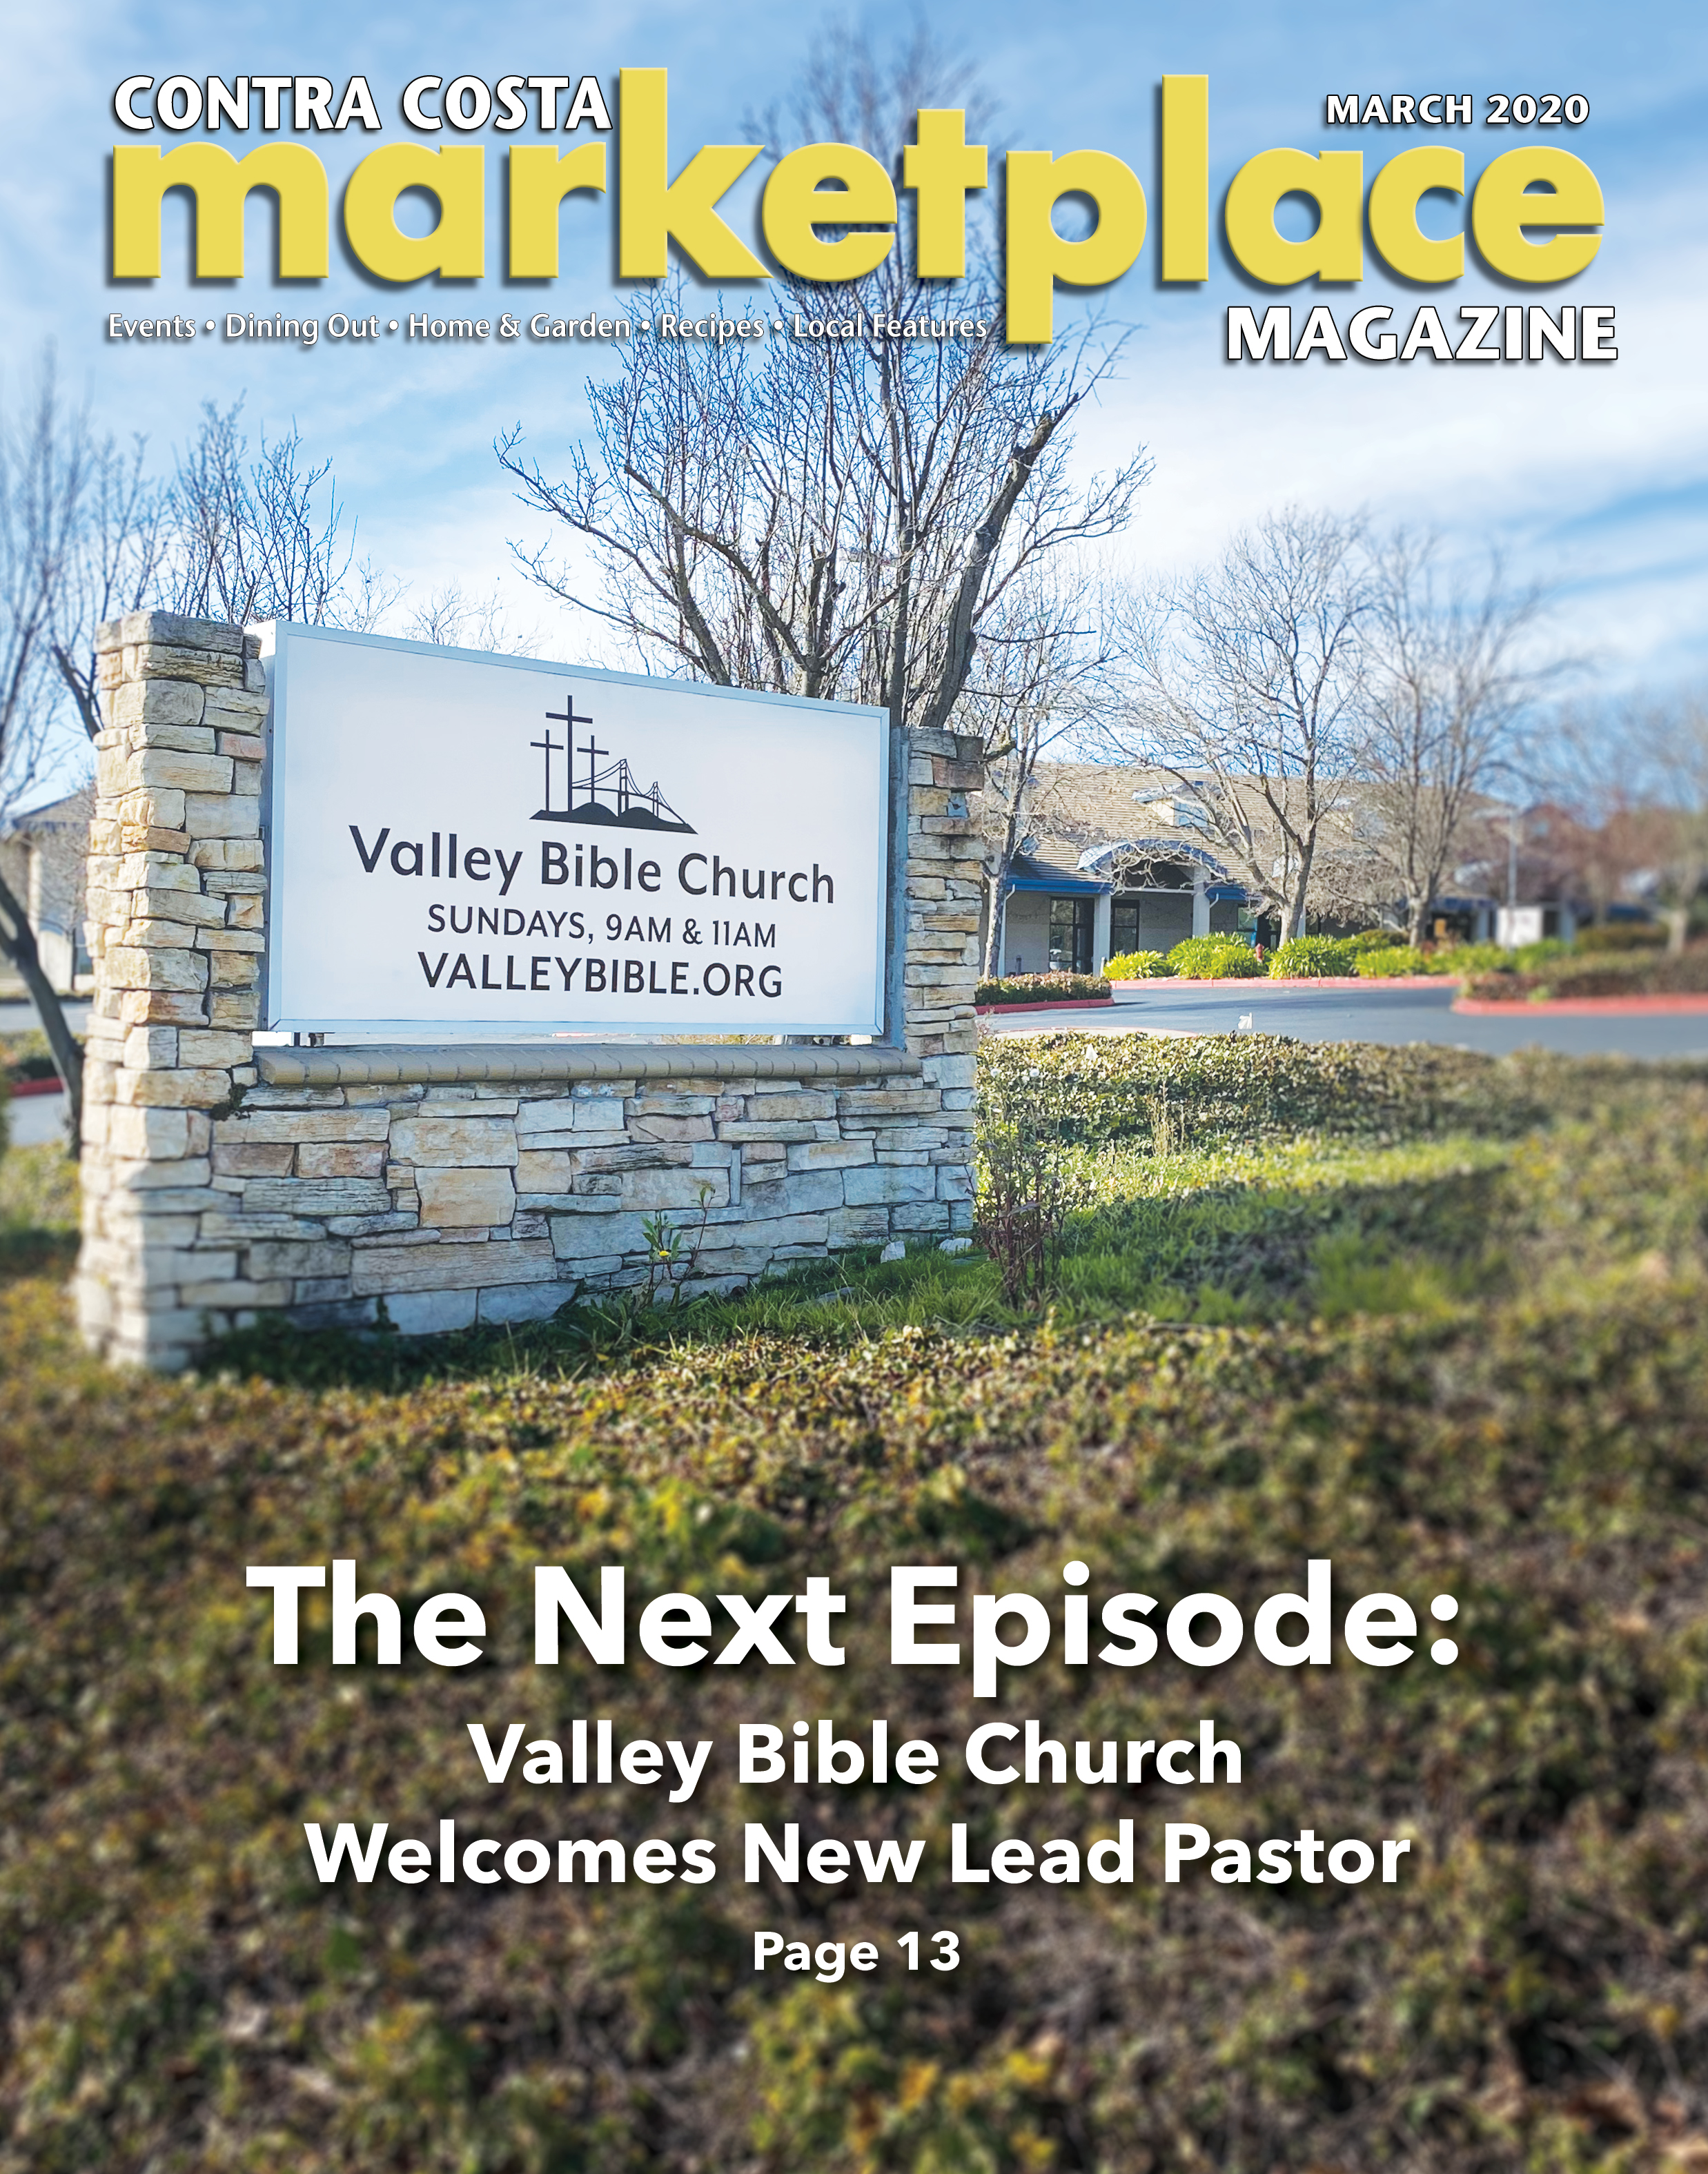 valley bible 0320coverHR